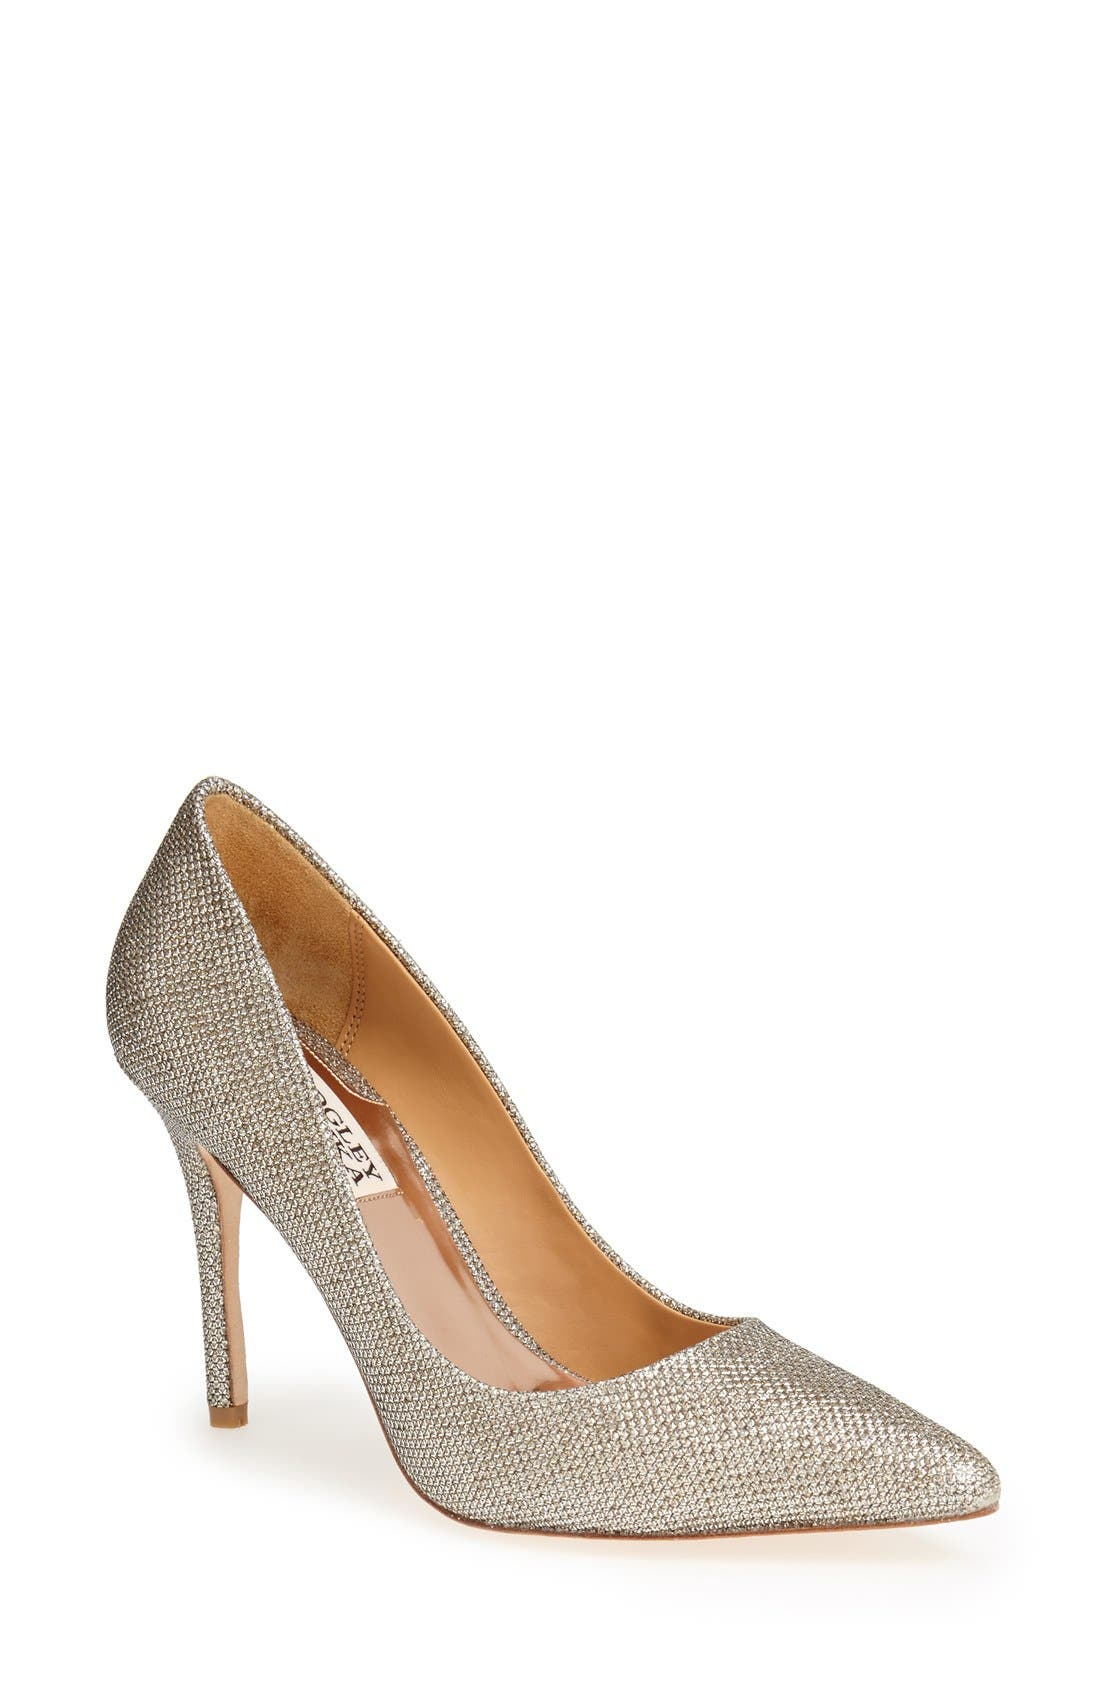 Main Image - Badgley Mischka 'Luster' Pointy Toe Pump (Women)